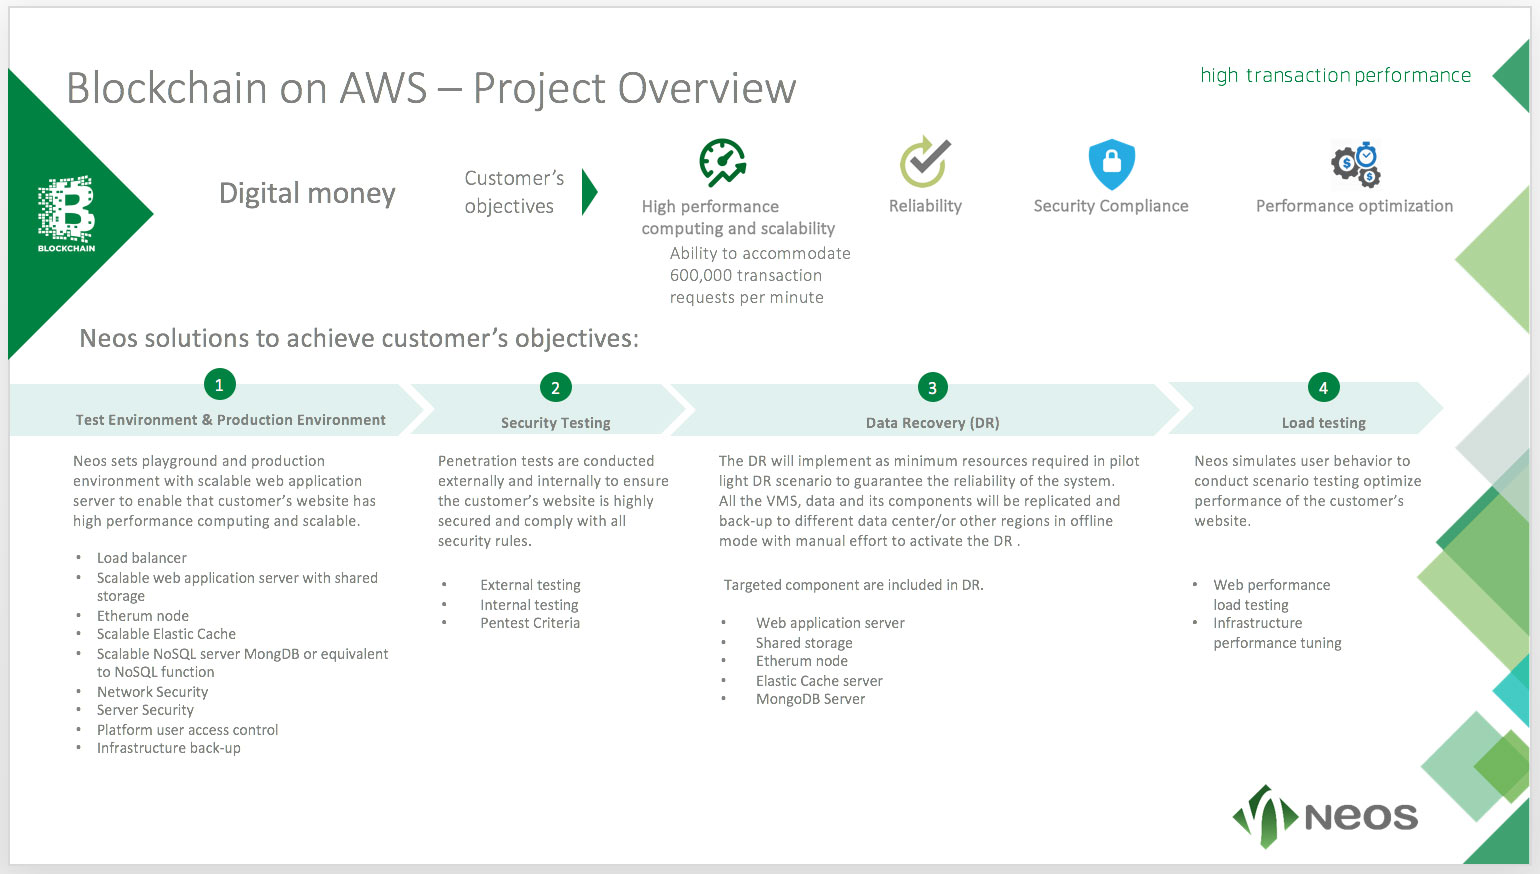 Neos IT Services | Project Reference - Enable Blockchain on AWS